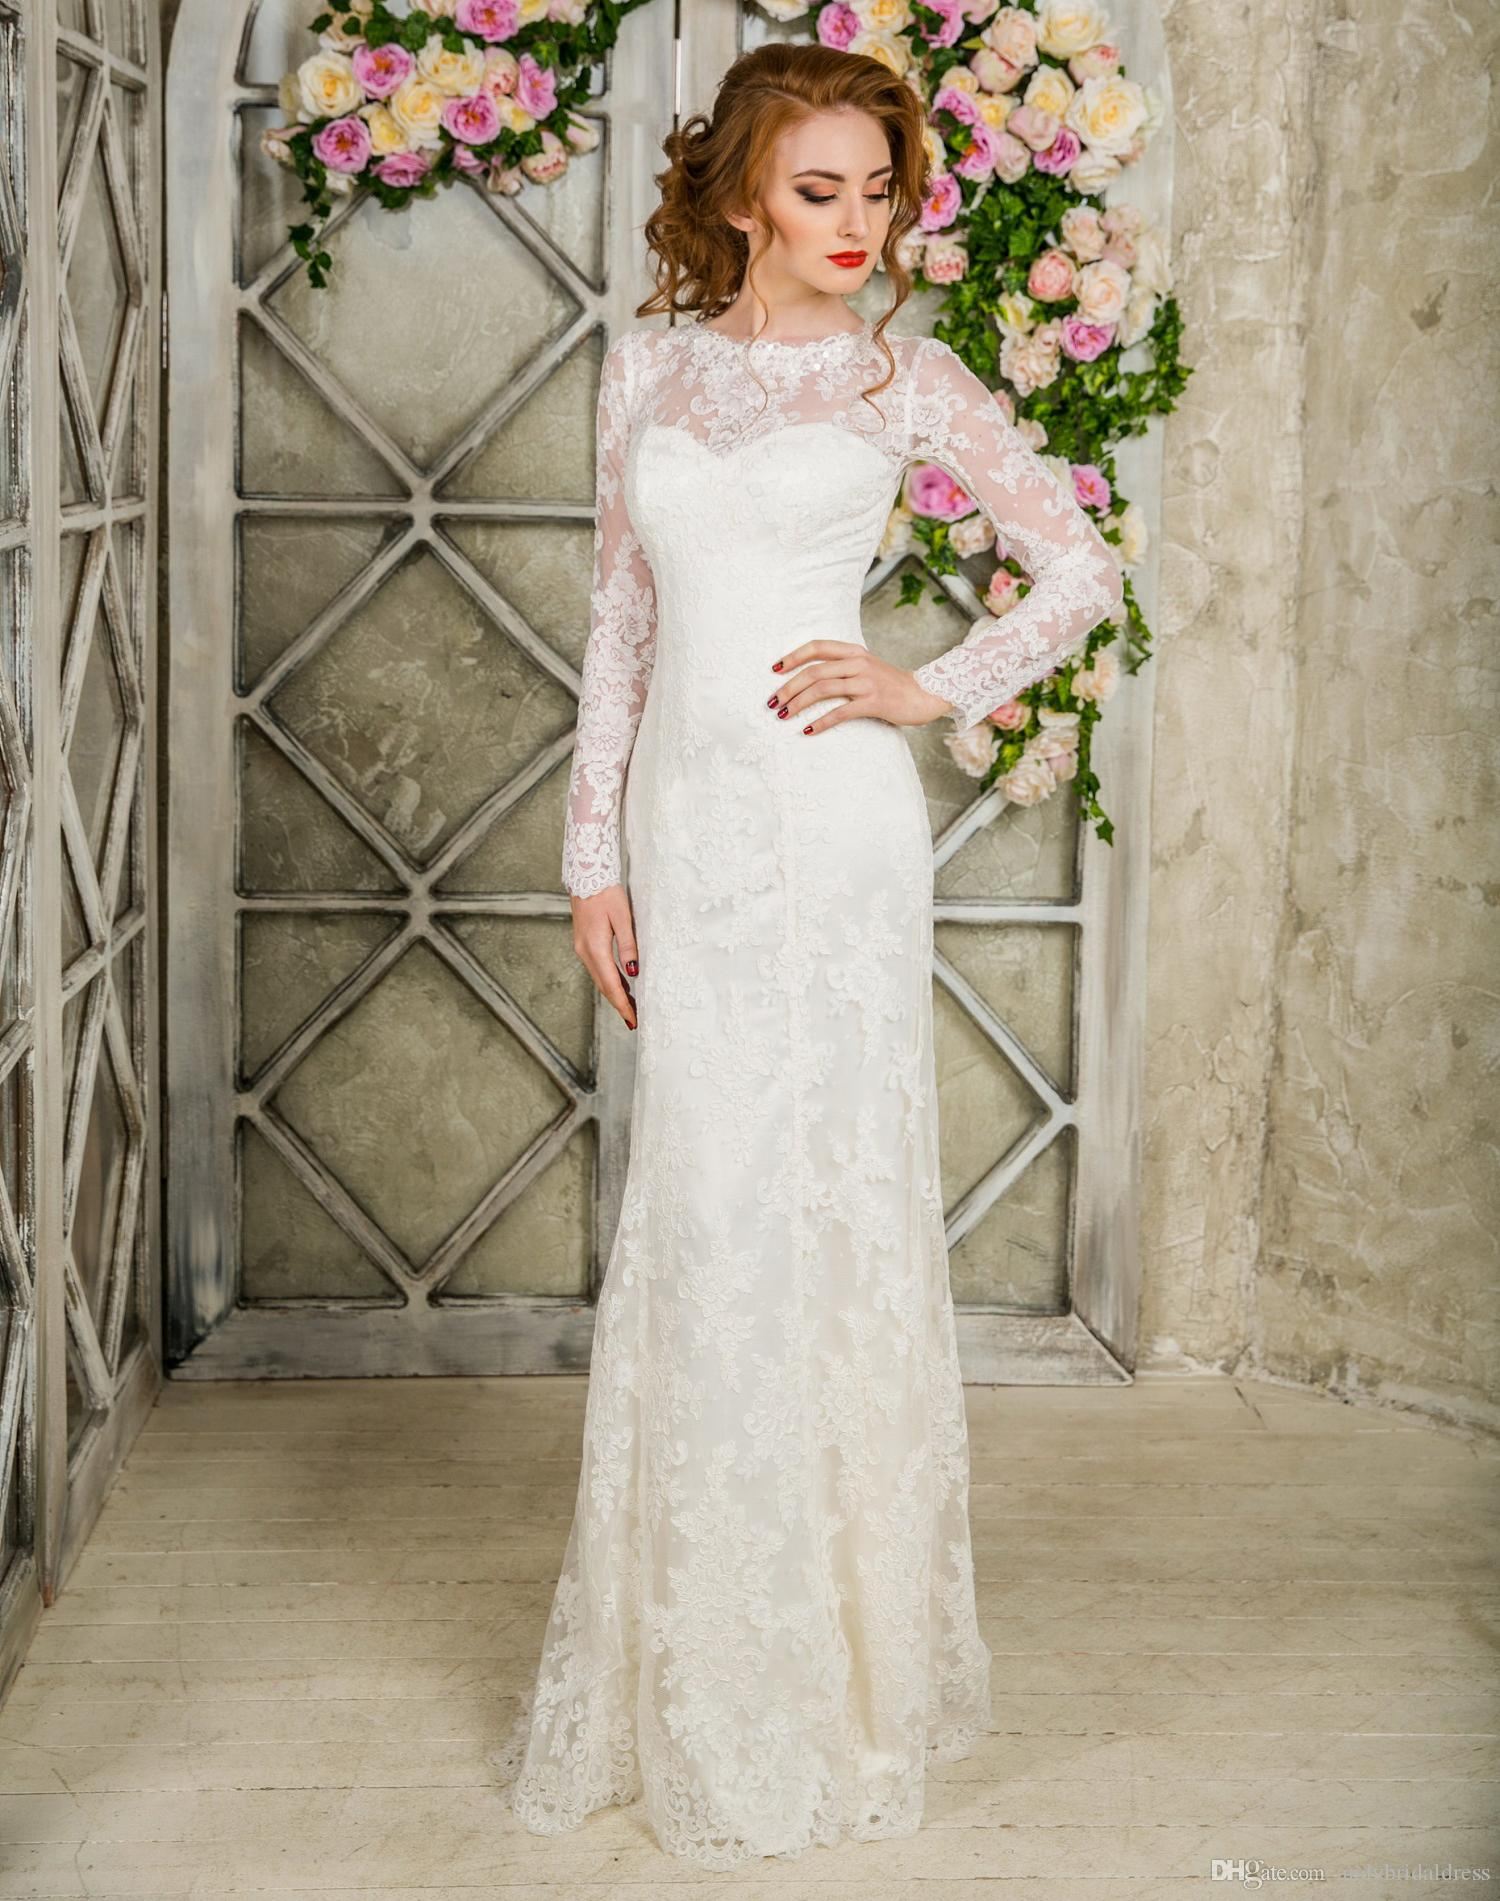 Discount Stunning 2017 Elegant Mermaid Wedding Dress Long Sleeve Lace Trumpet Gown Bridal Dresses Floor Length Bride Couture Gowns: White Elegant Mermaid Wedding Dresses At Websimilar.org